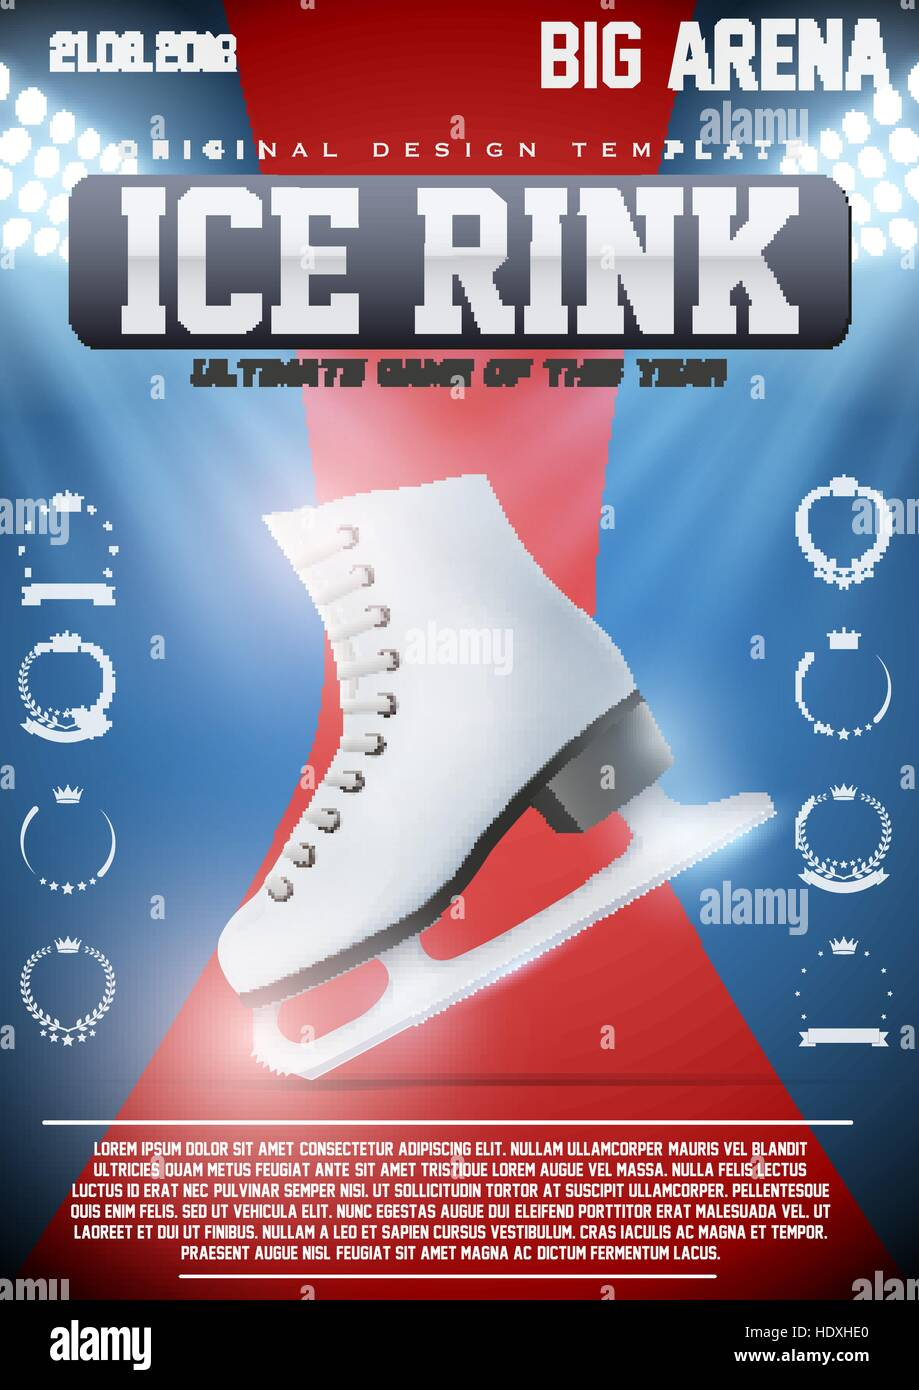 Poster Template of Ice Skating Rink Stock Vector Art & Illustration ...